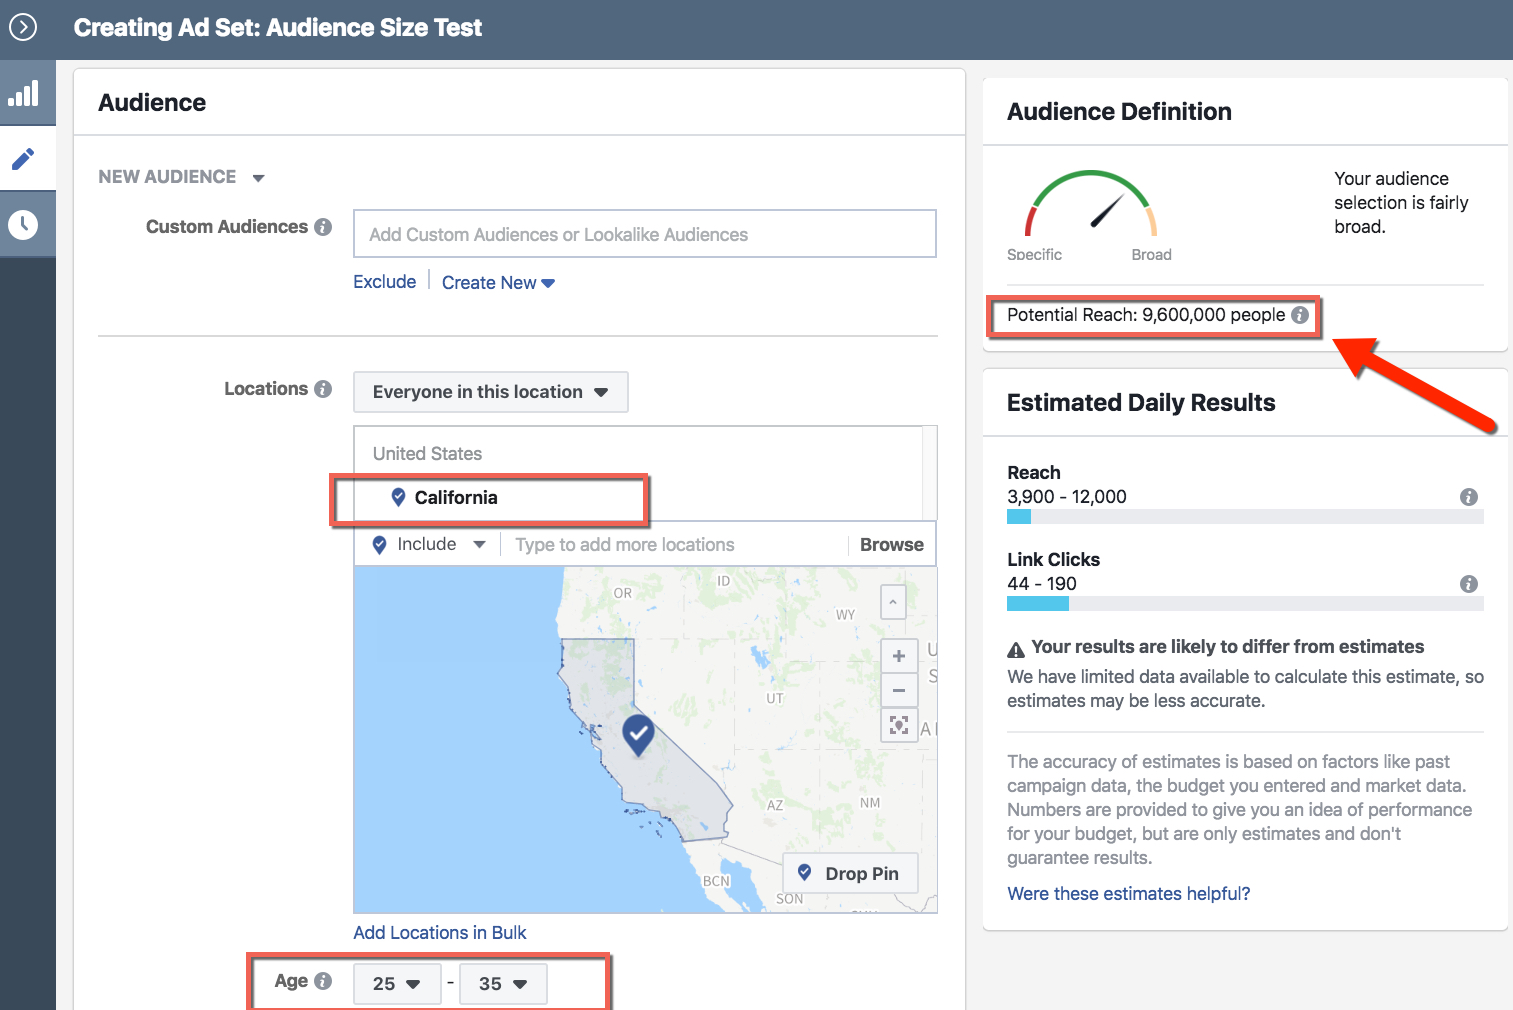 Facebook Audience Selection - Ad Set Level - California Users Aged 25-35